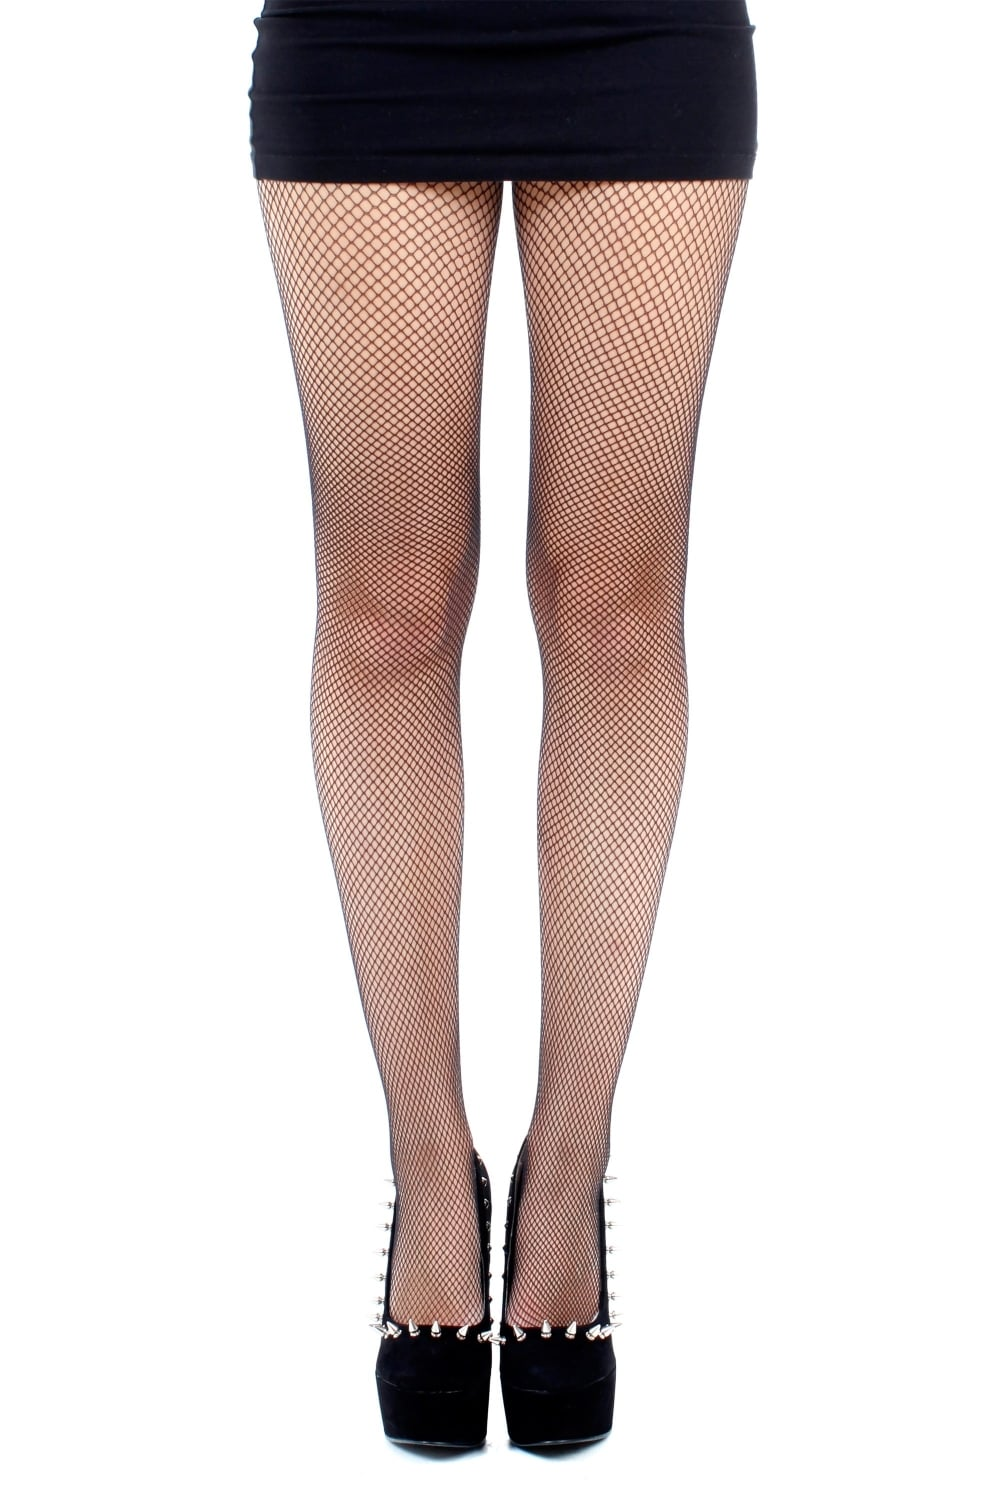 Fishnet tights from pamela mann for Fish net tights